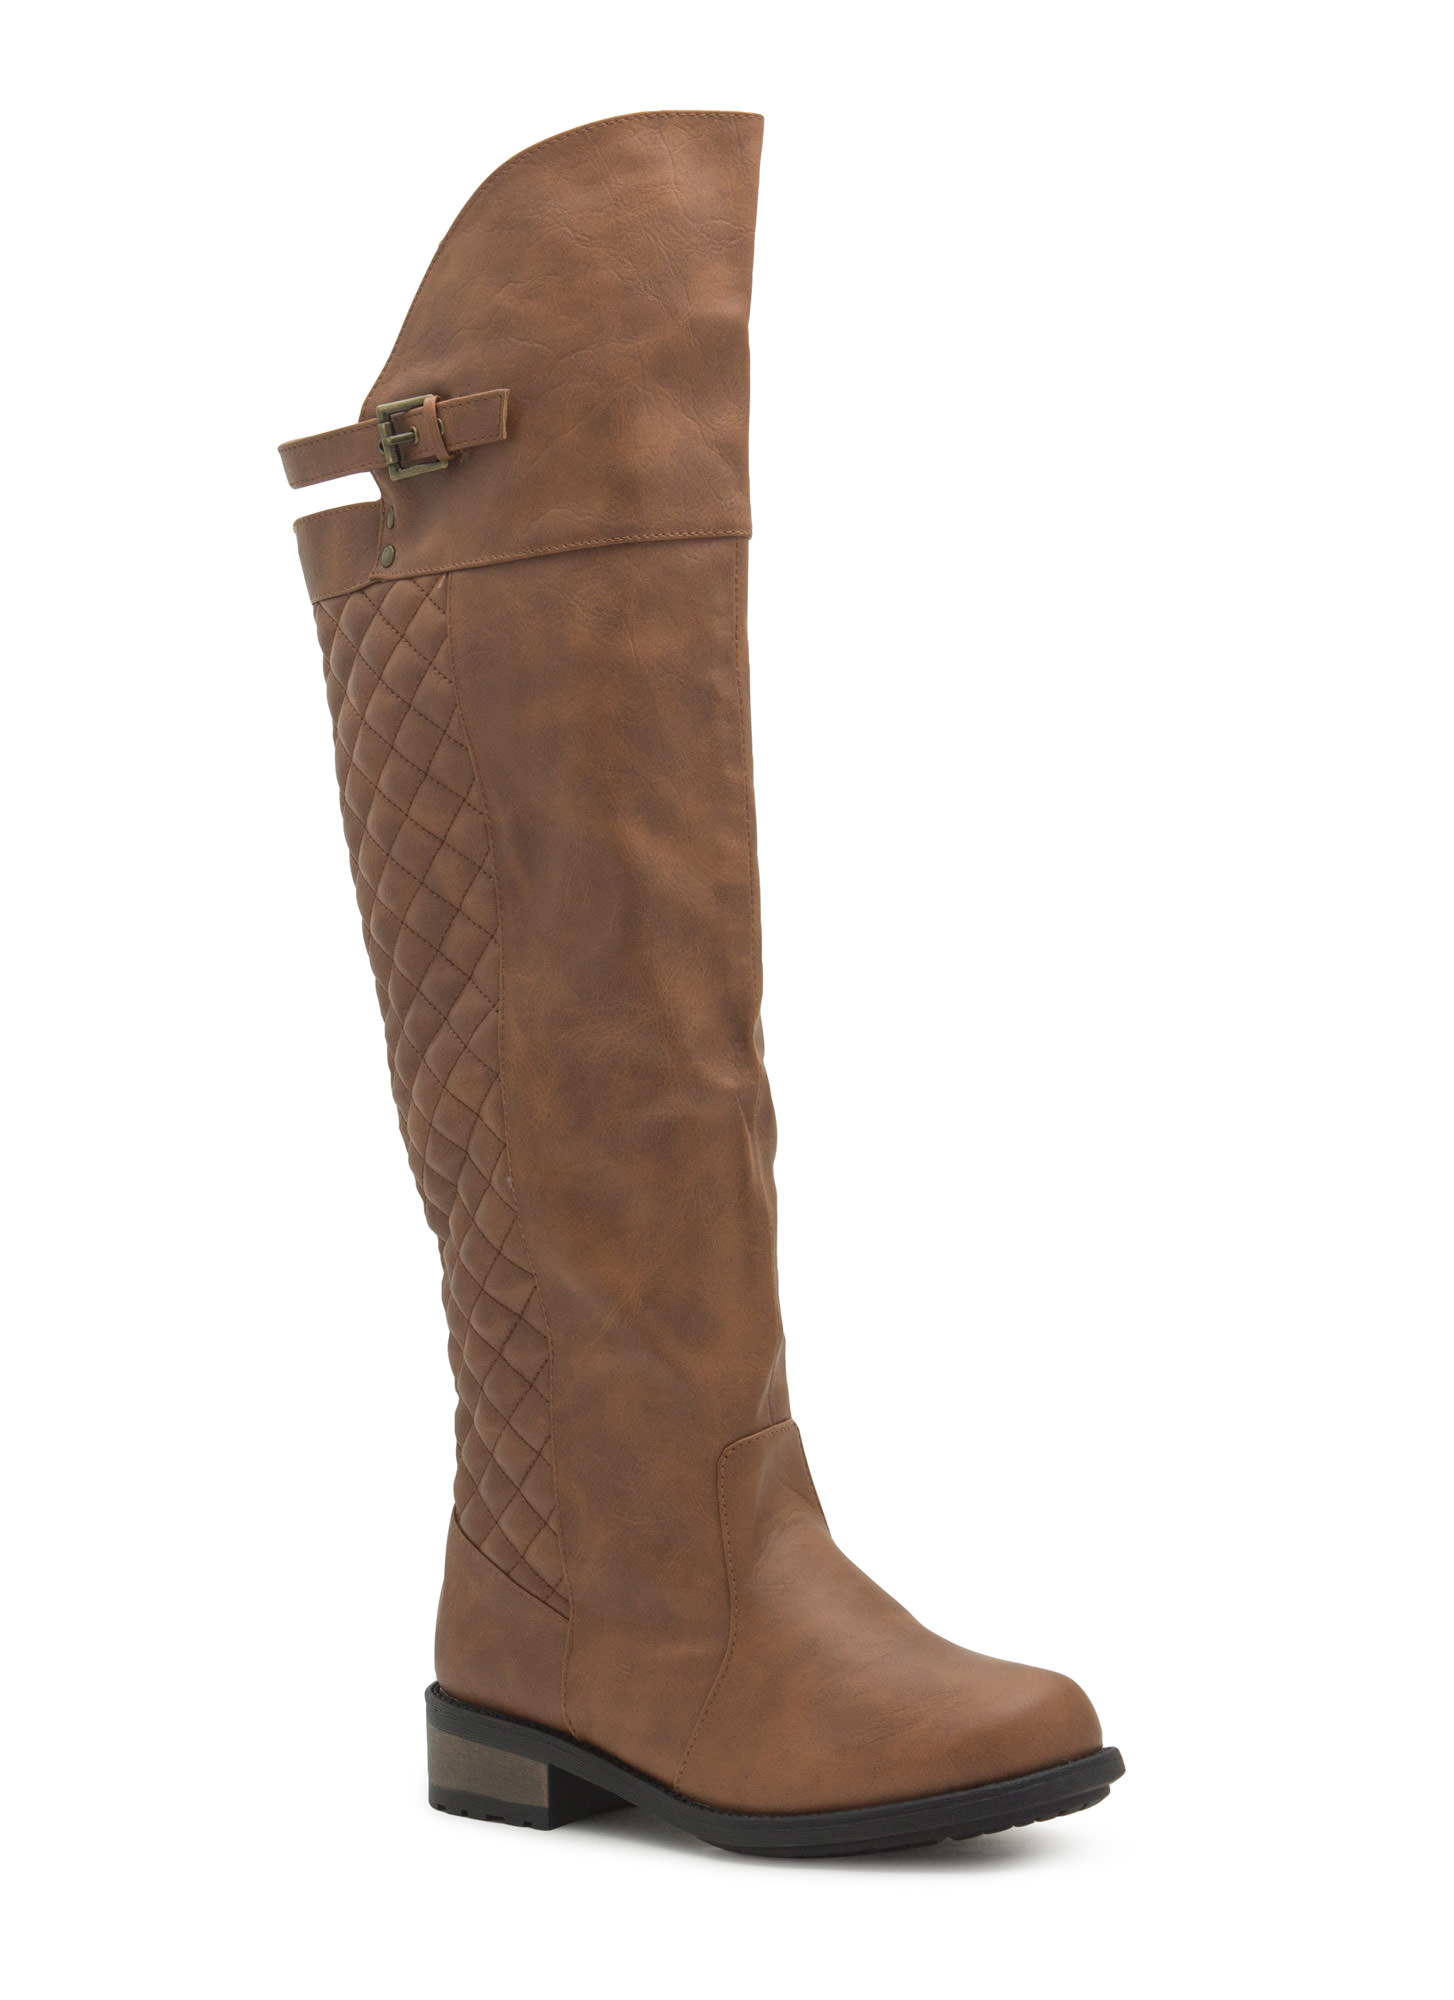 Quilty Pleasure Over-The-Knee Boots COGNAC